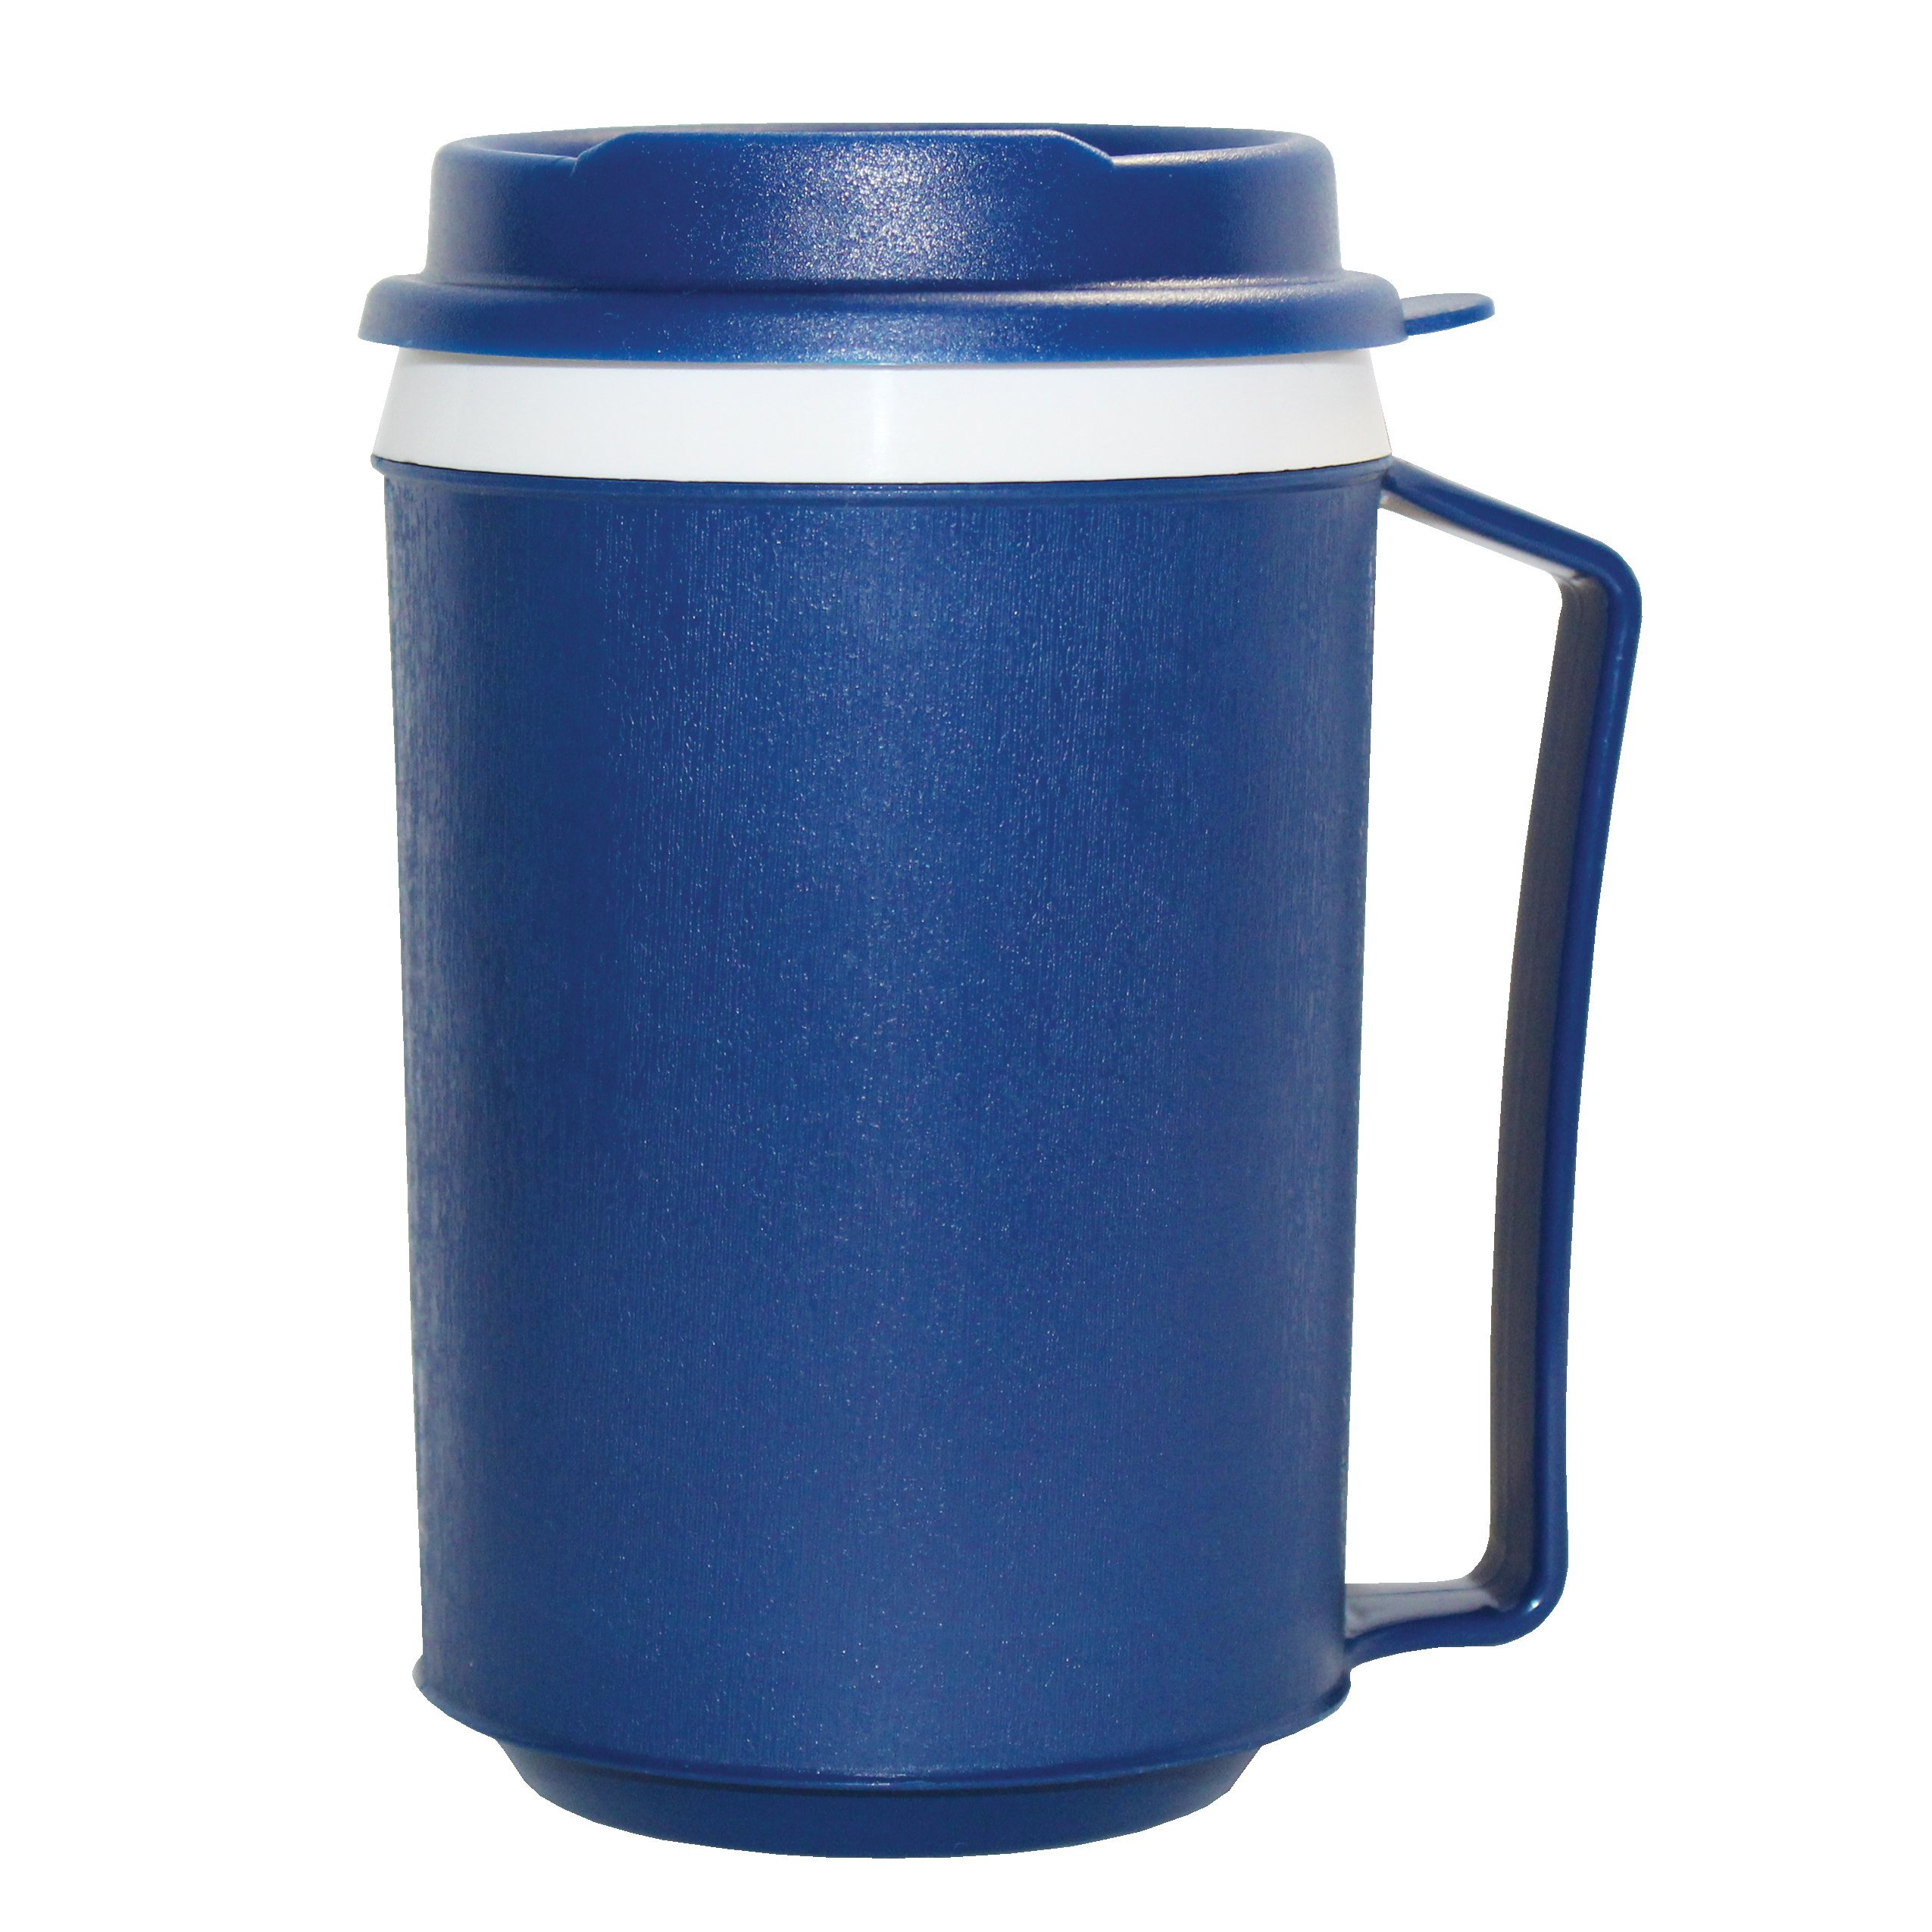 Rehabilitation Advantage Insulated Mug with Tumbler Lid, Blue, 0.3 Pound